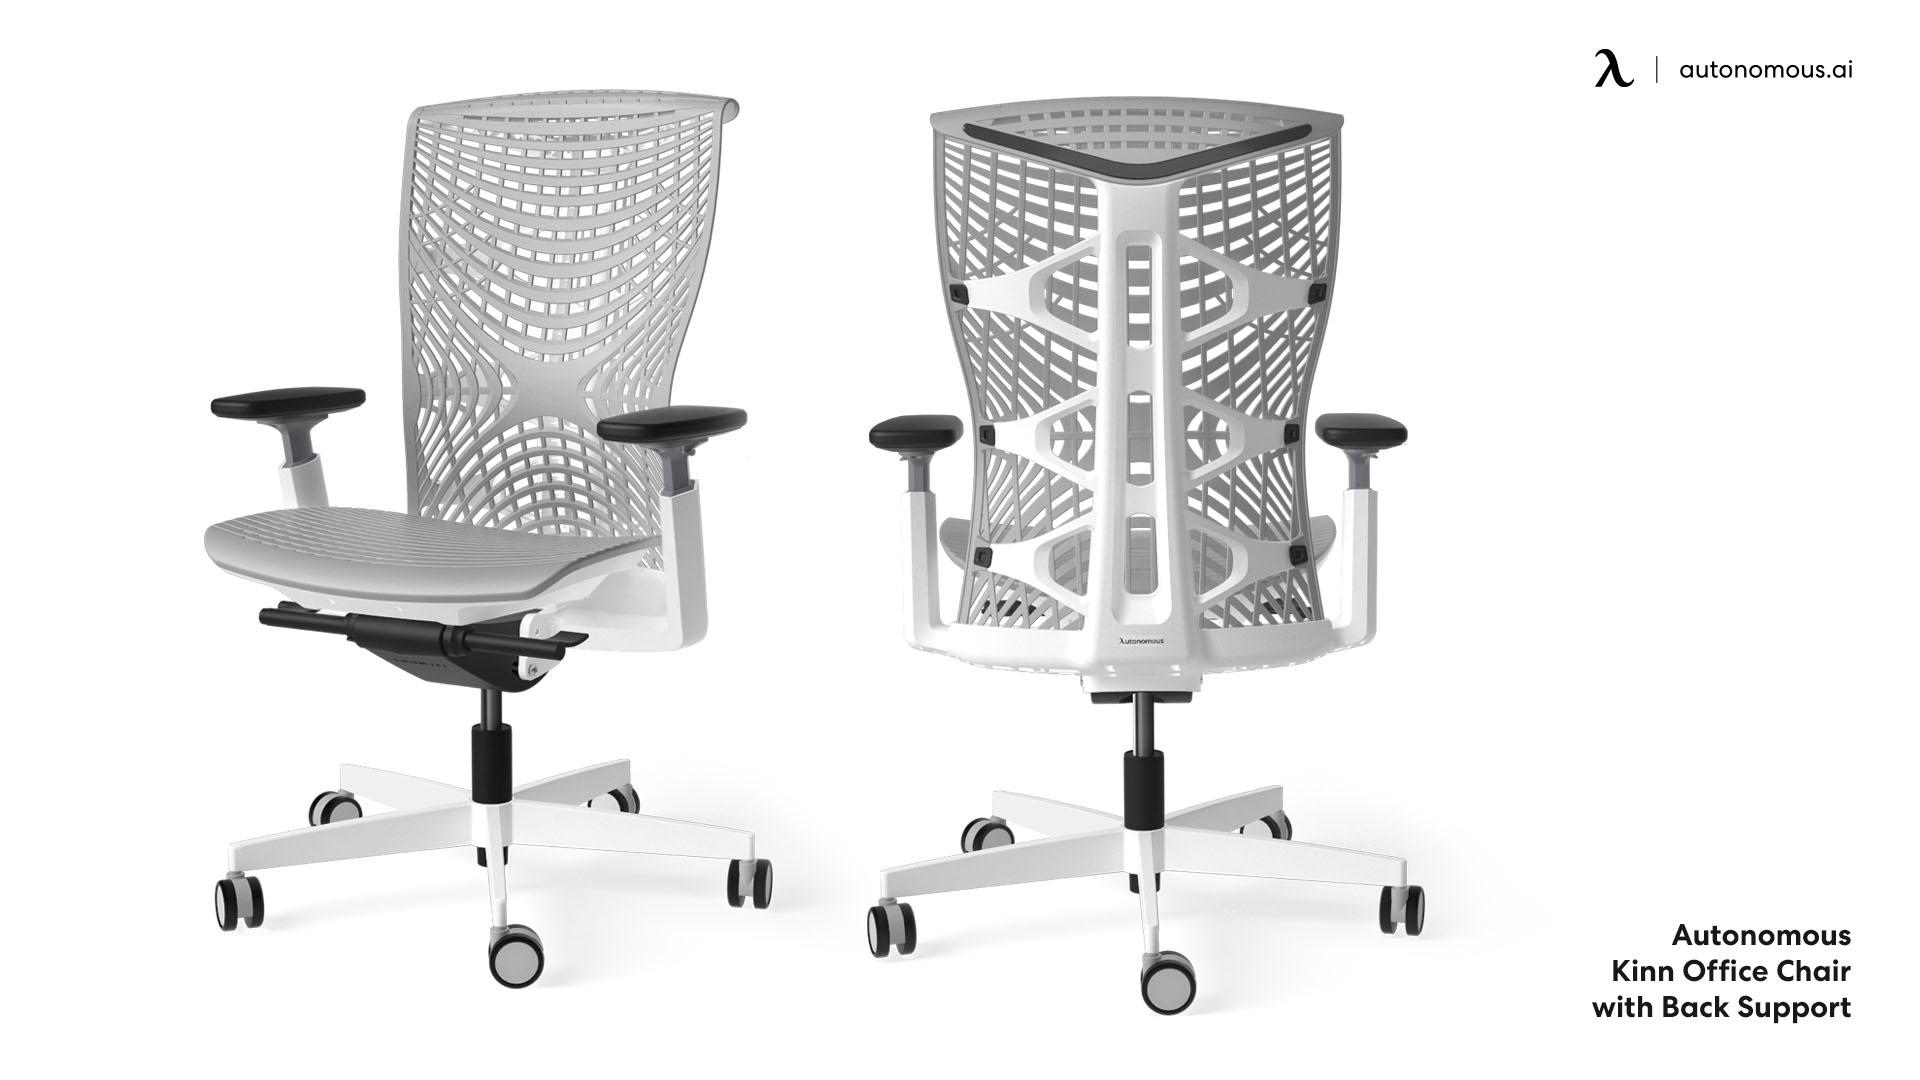 Kinn Office Chair with Back Support